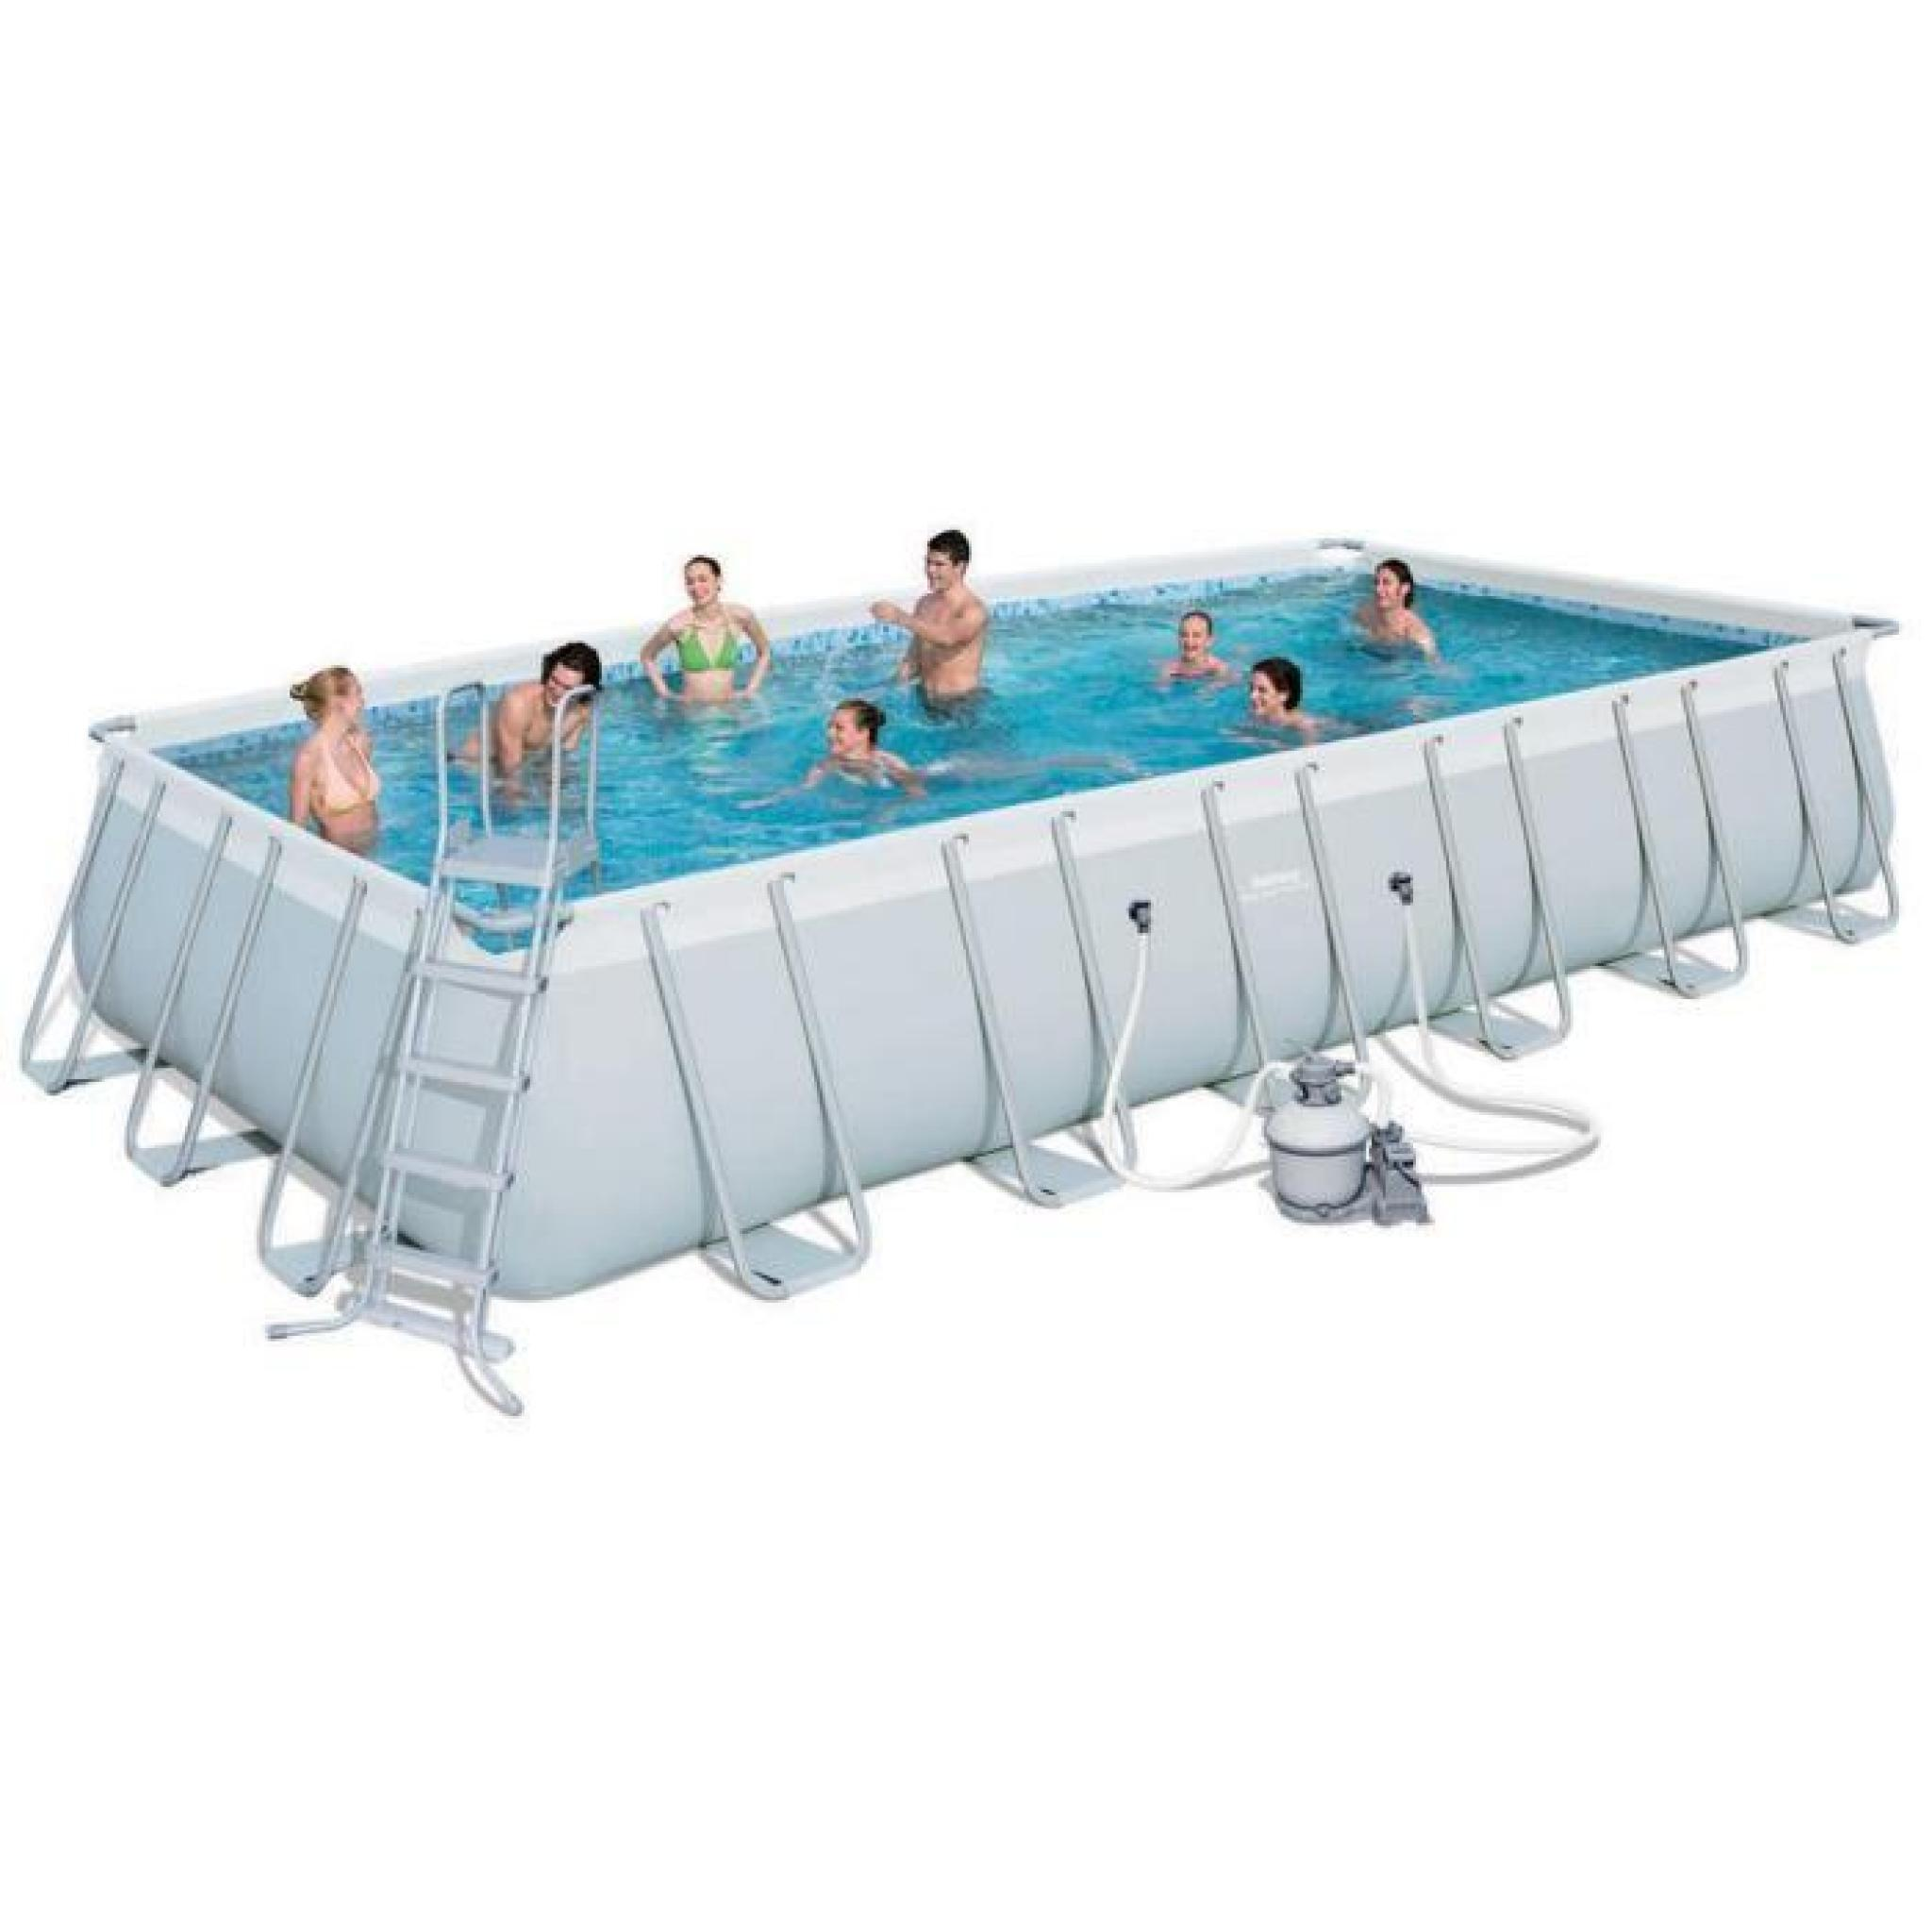 Piscine autoportante tubulaire power steel rectangl 4m12 for Piscine tubulaire pas chere